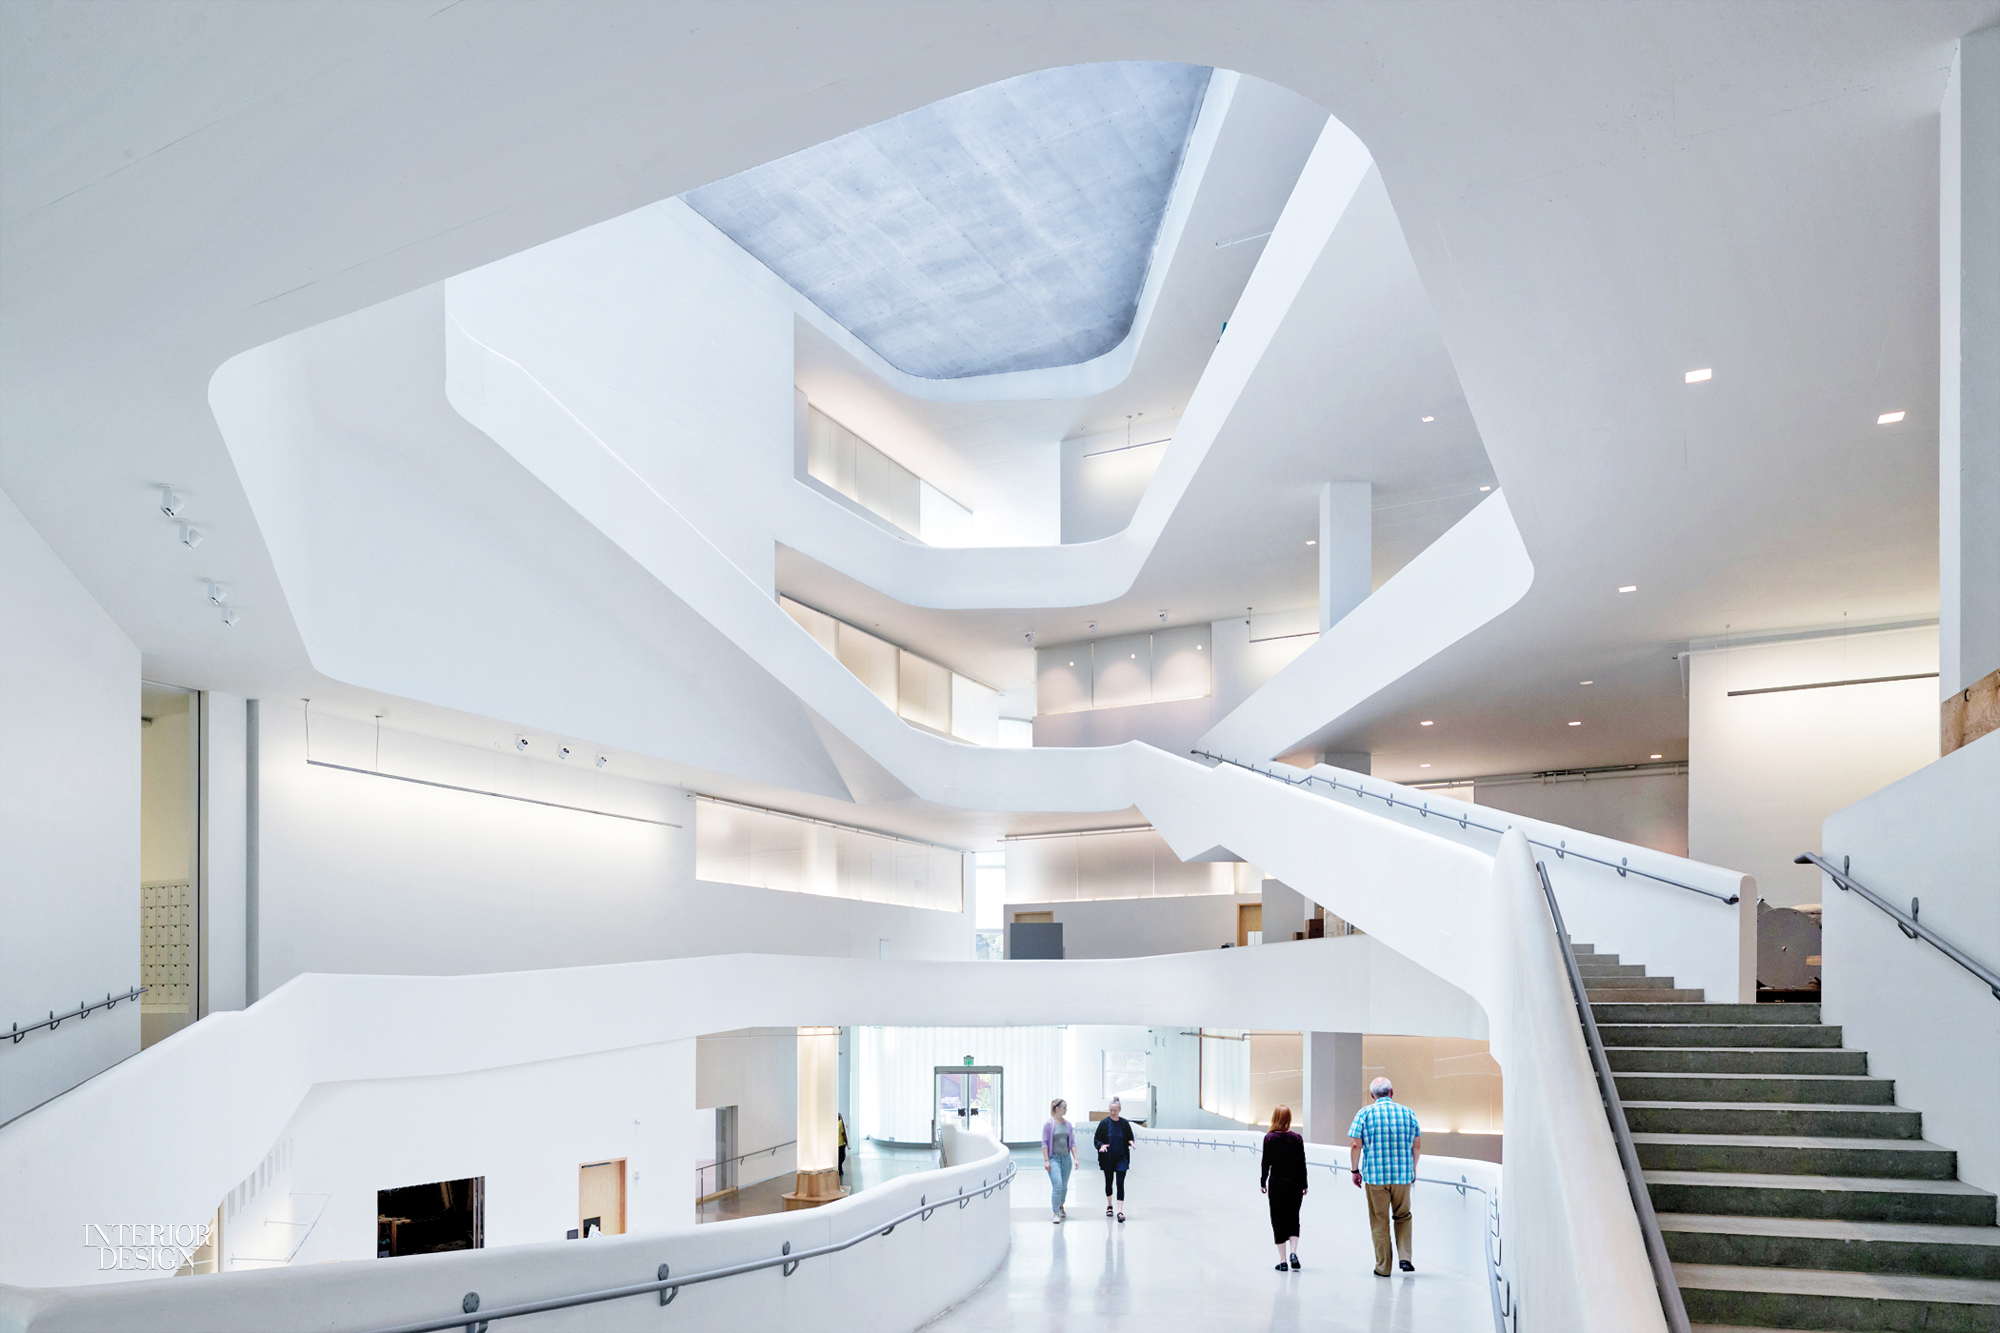 University Of Iowa Visual Arts Building By Steven Holl: 2016 Best Of Year  Winner For Education